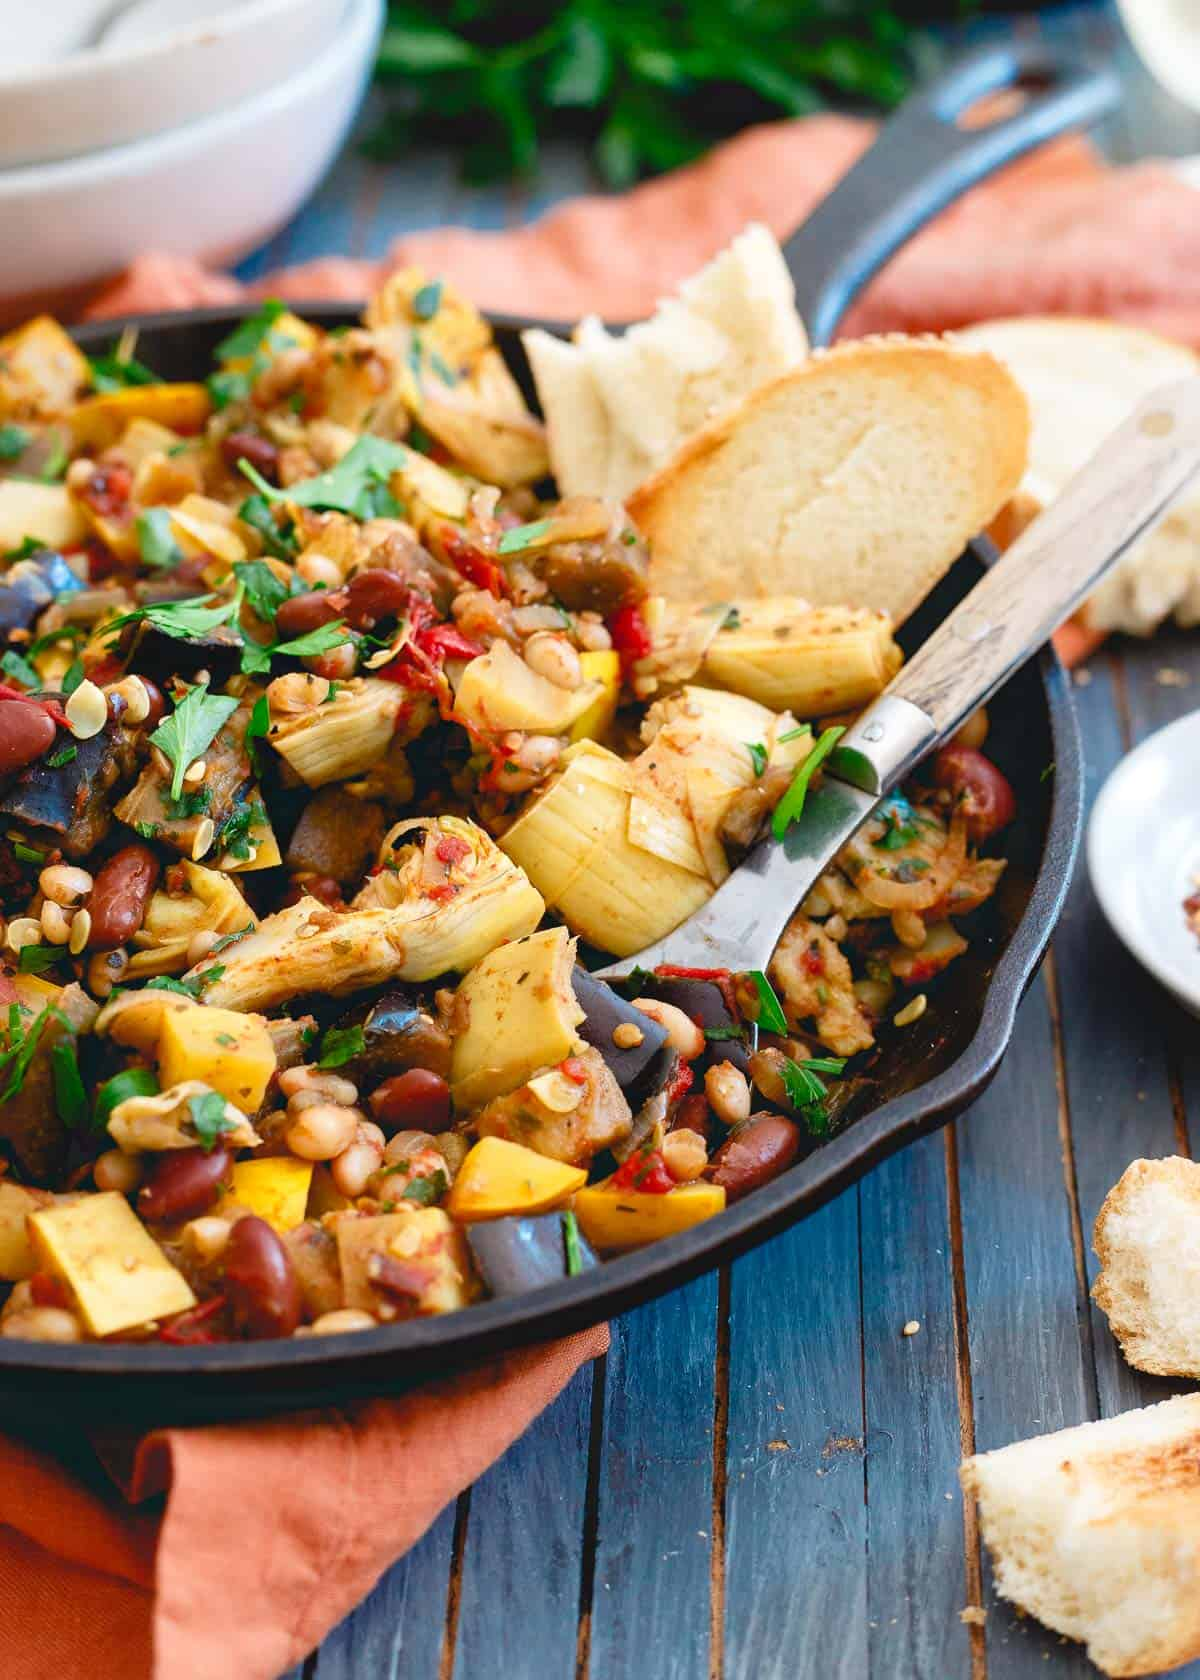 This meatless meal is bursting with delicious end of summer vegetables like squash, tomatoes and eggplant.